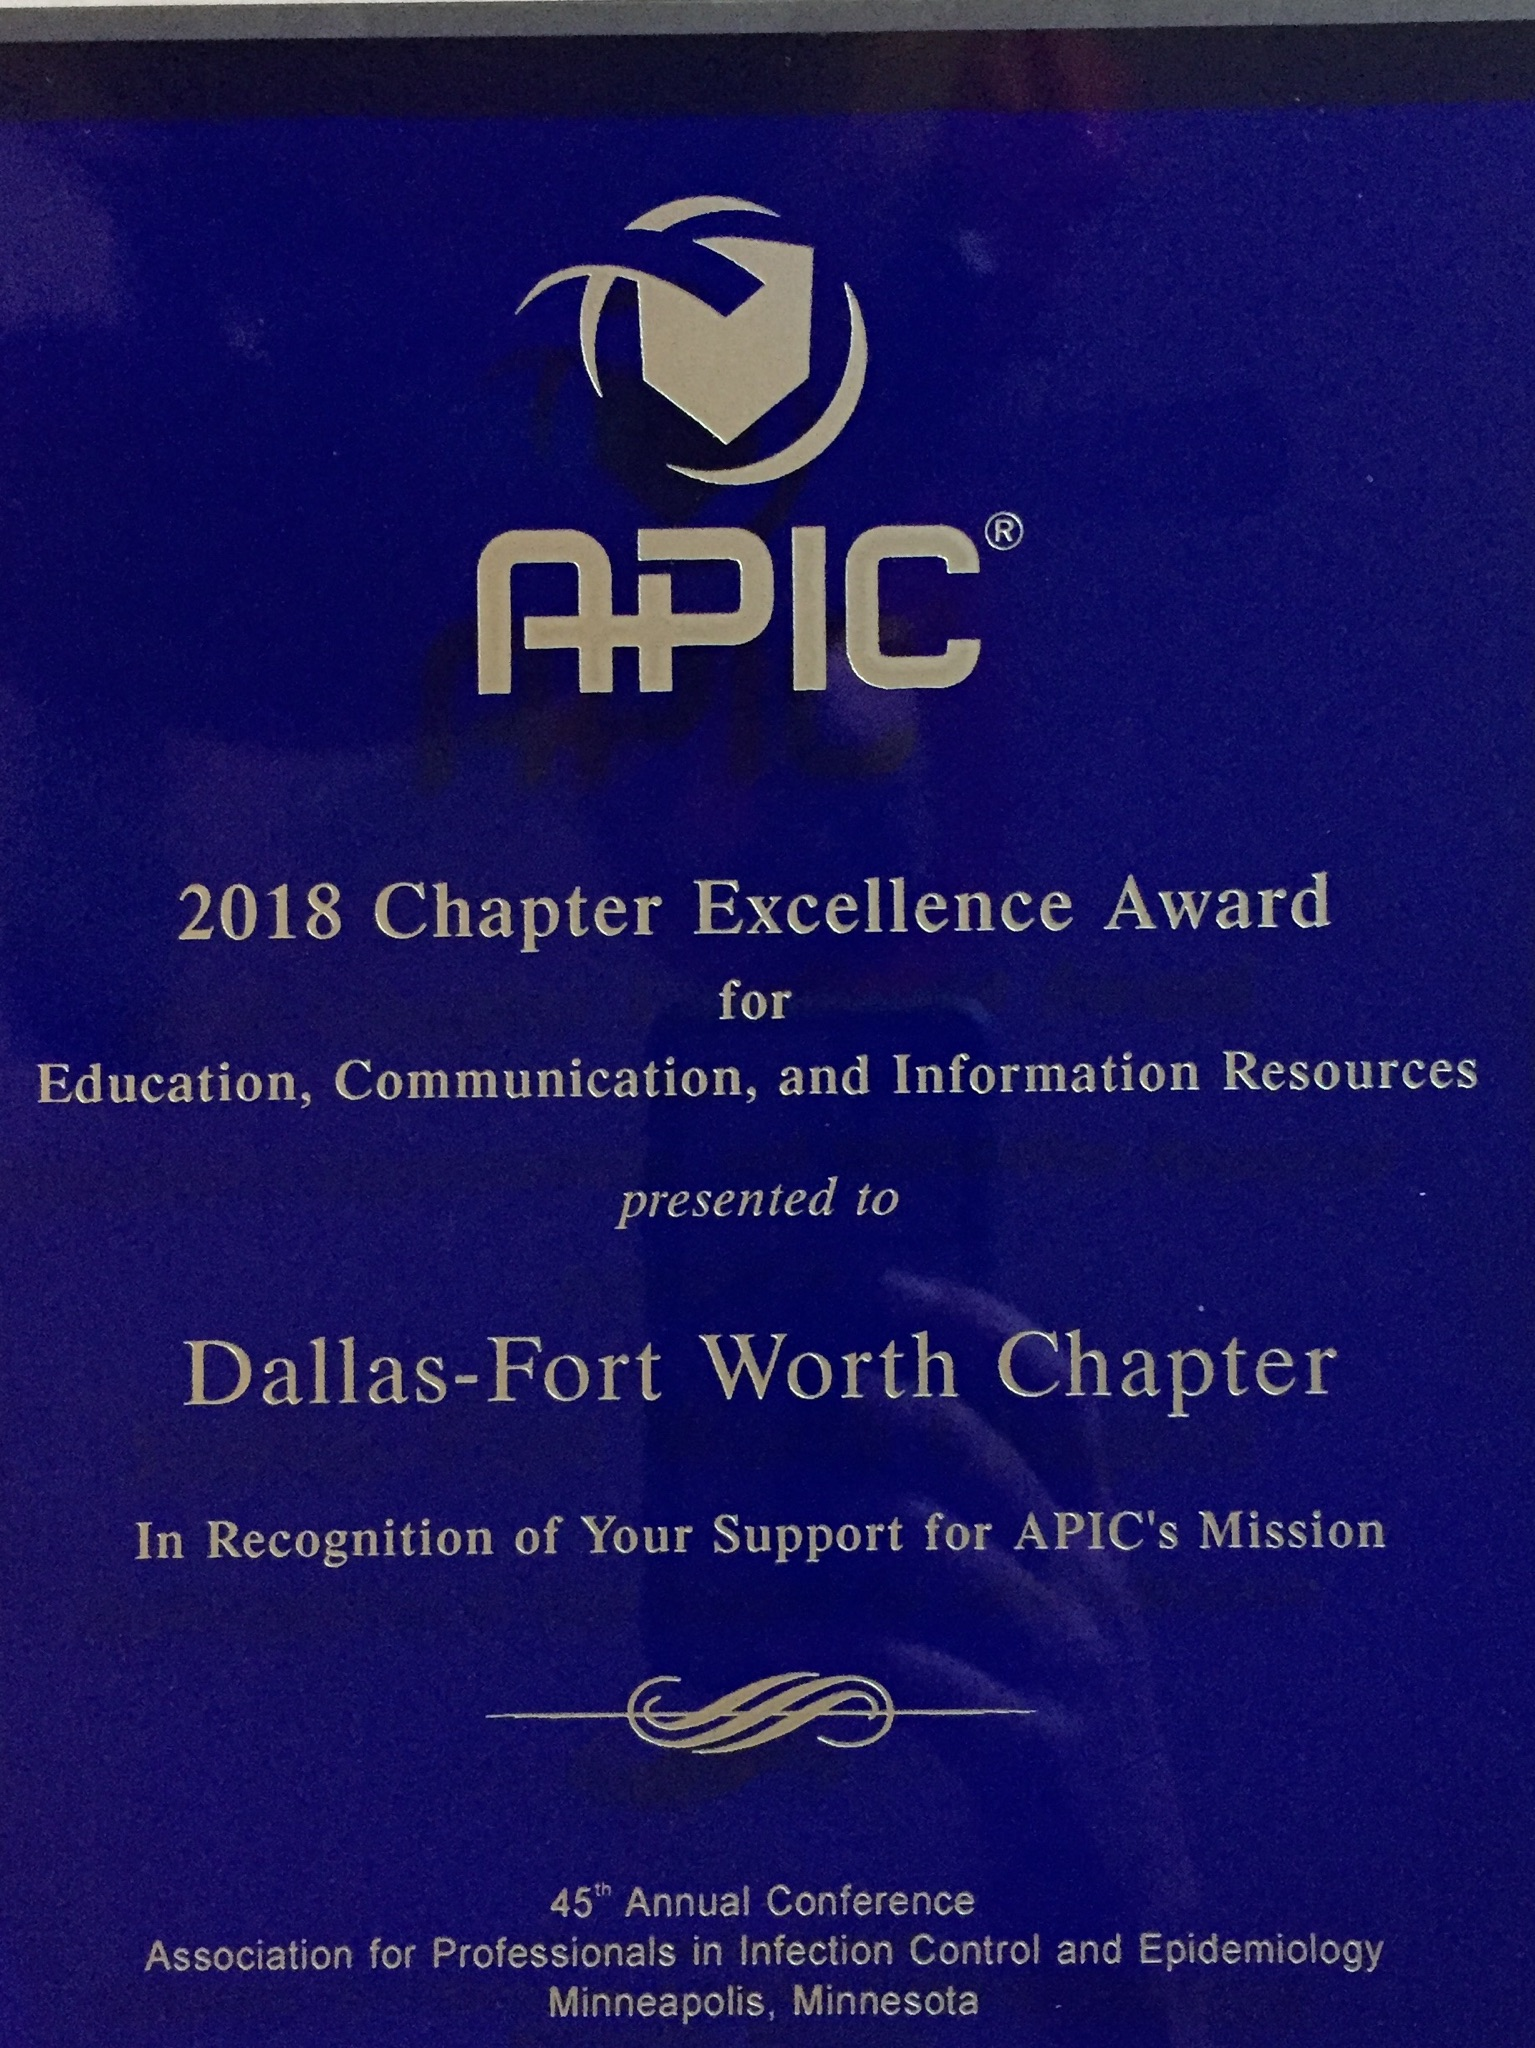 2018 APIC-DFW Chapter Excellence Award.jpg